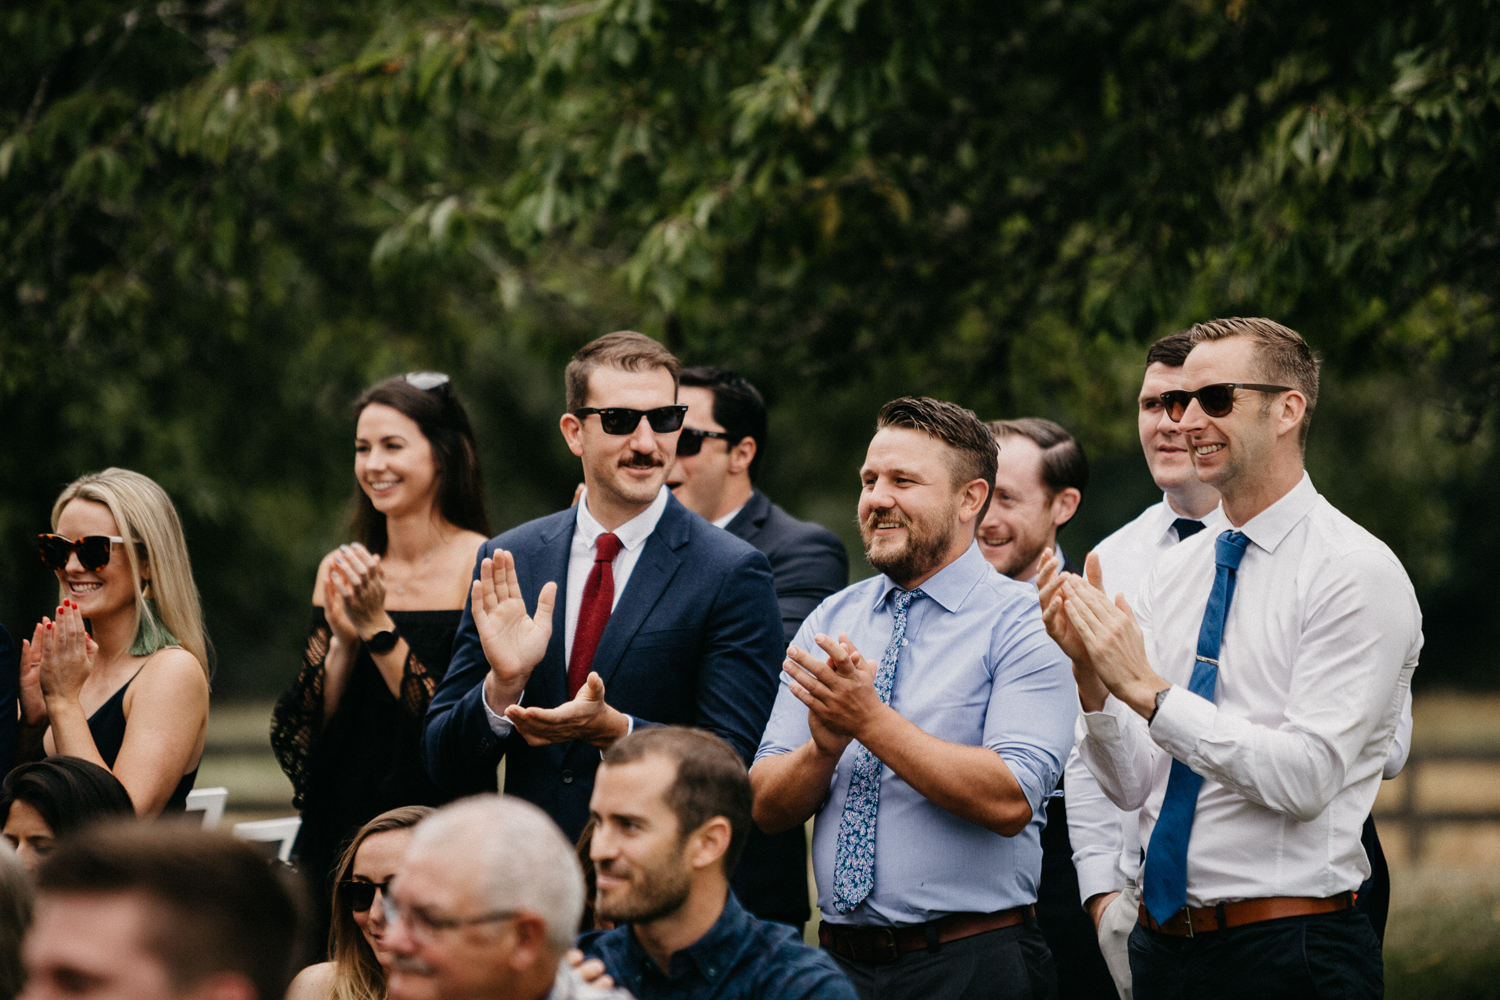 guests celebrate at Bird's Eye Cove wedding, Vancouver Island